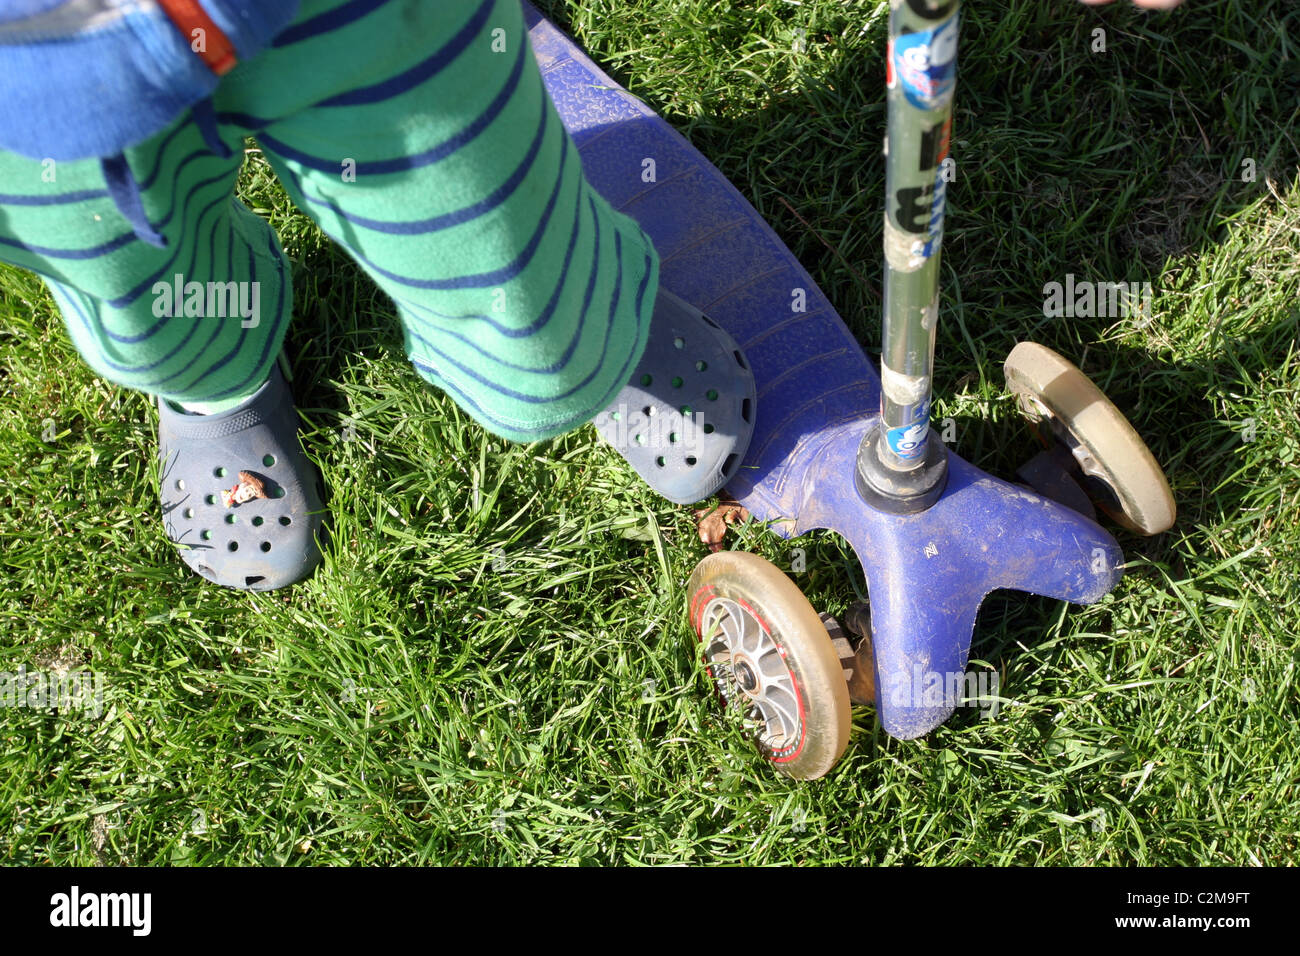 7e650401e241 Wearing Crocs Stock Photos   Wearing Crocs Stock Images - Alamy